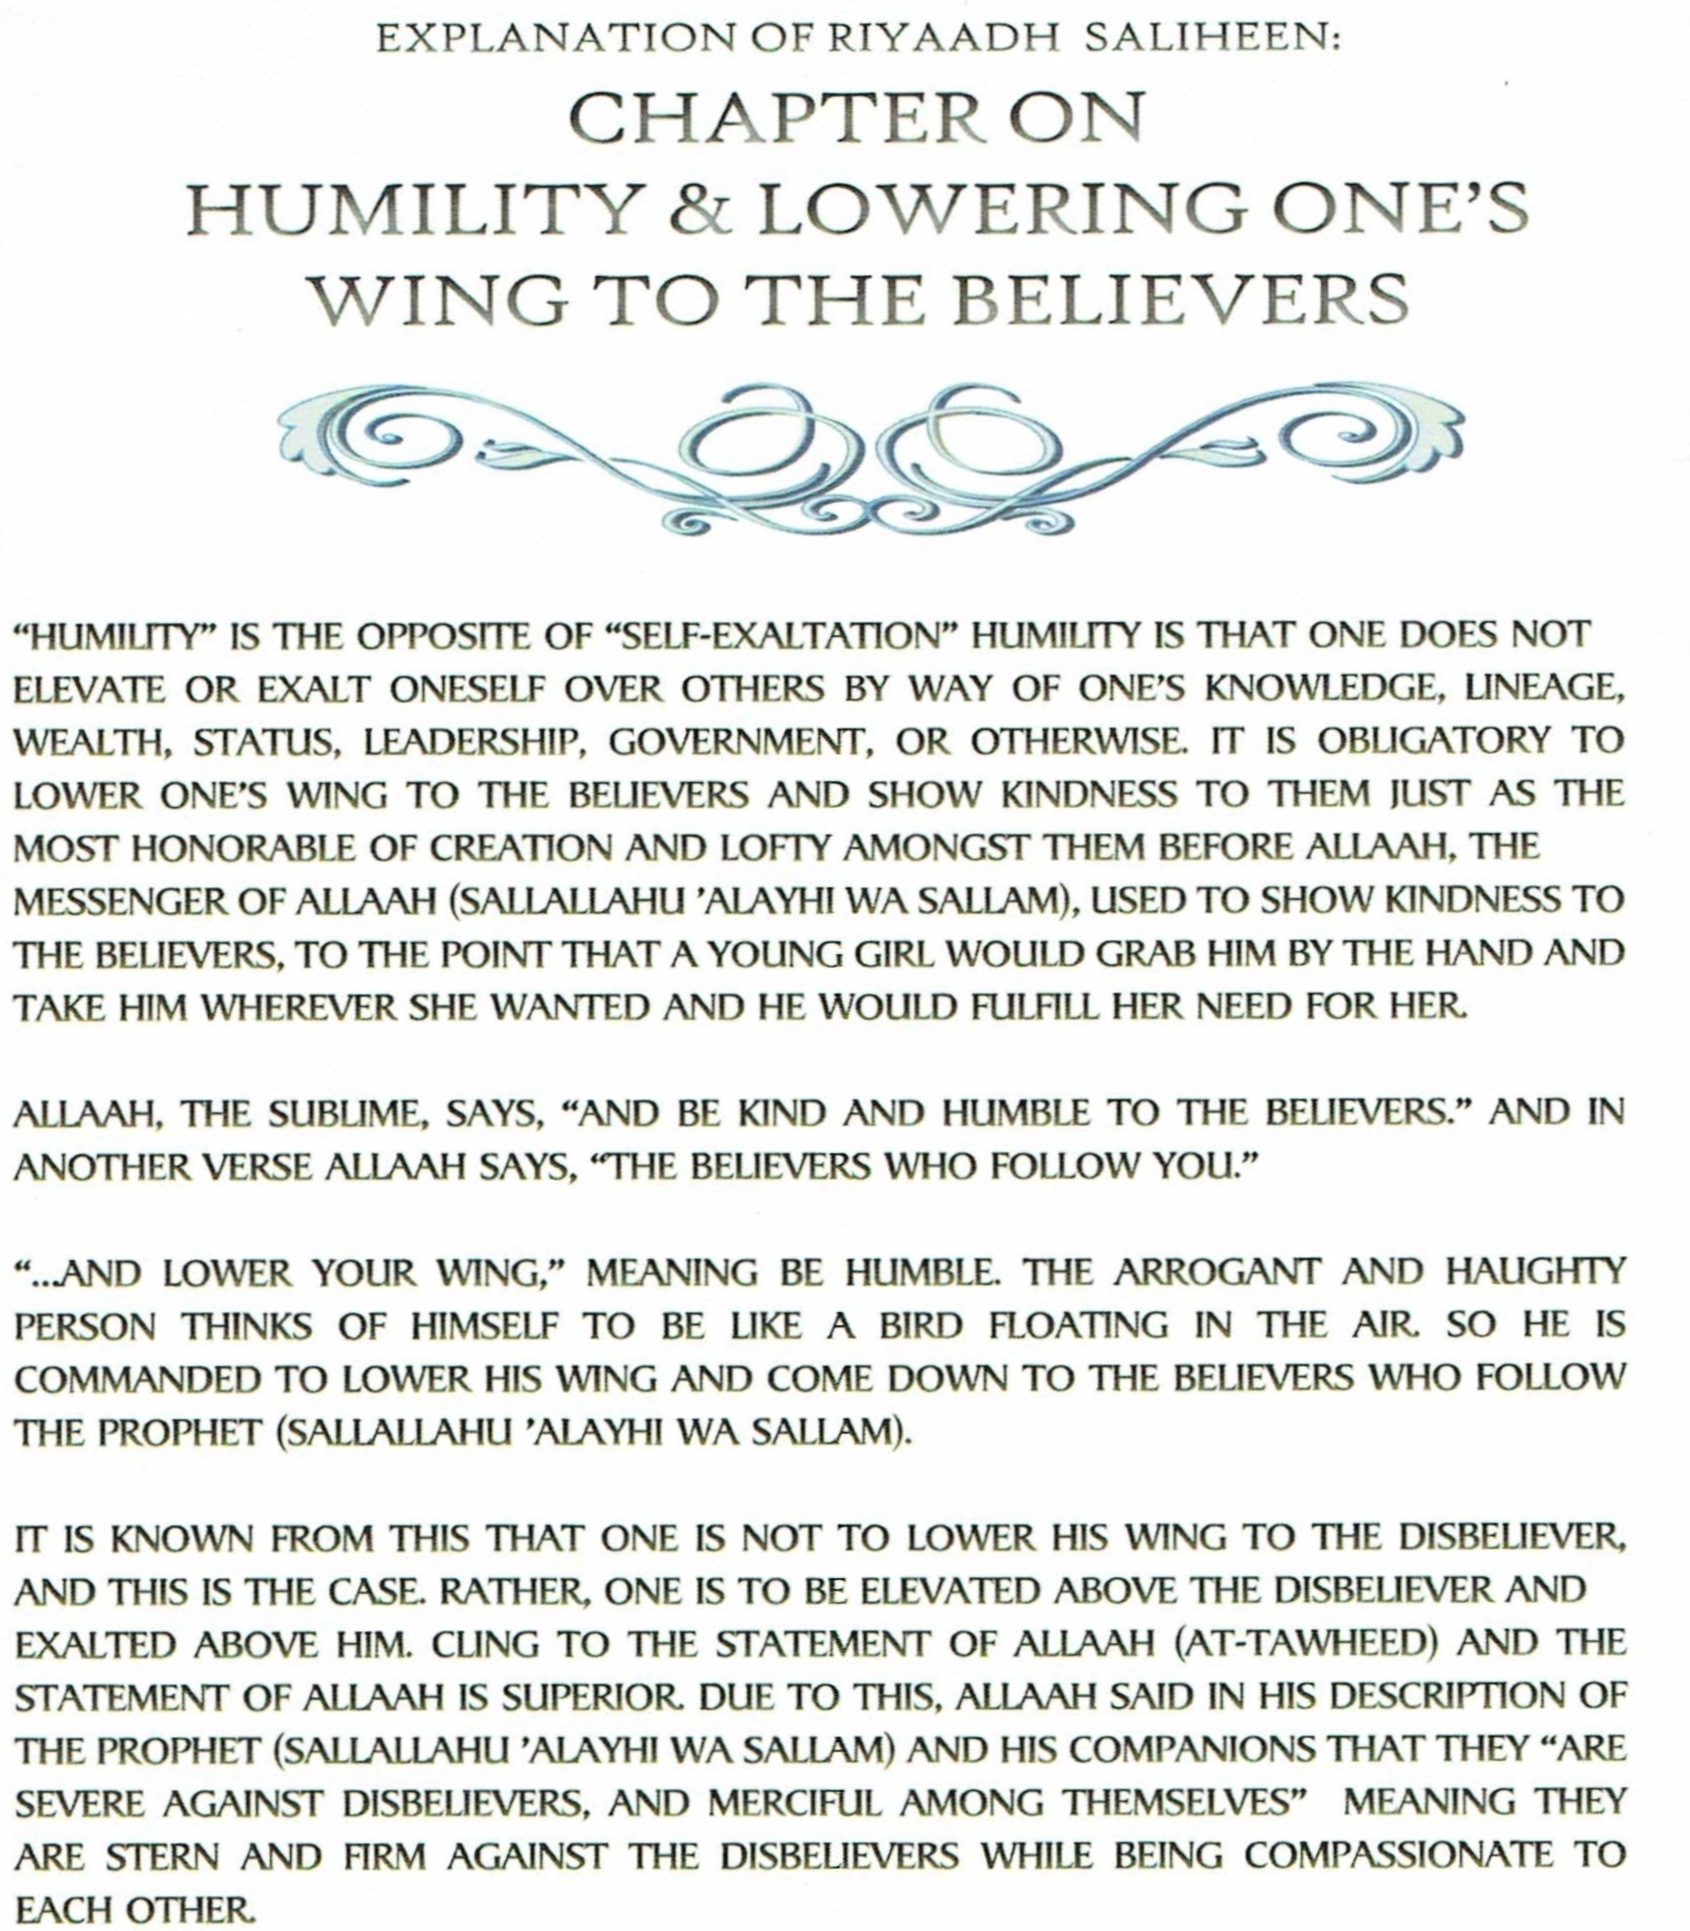 explanation-of-riyaadh-saliheen-chapter-on-humility-lowering-ones-wing-to-the-believers-1-copy.jpg